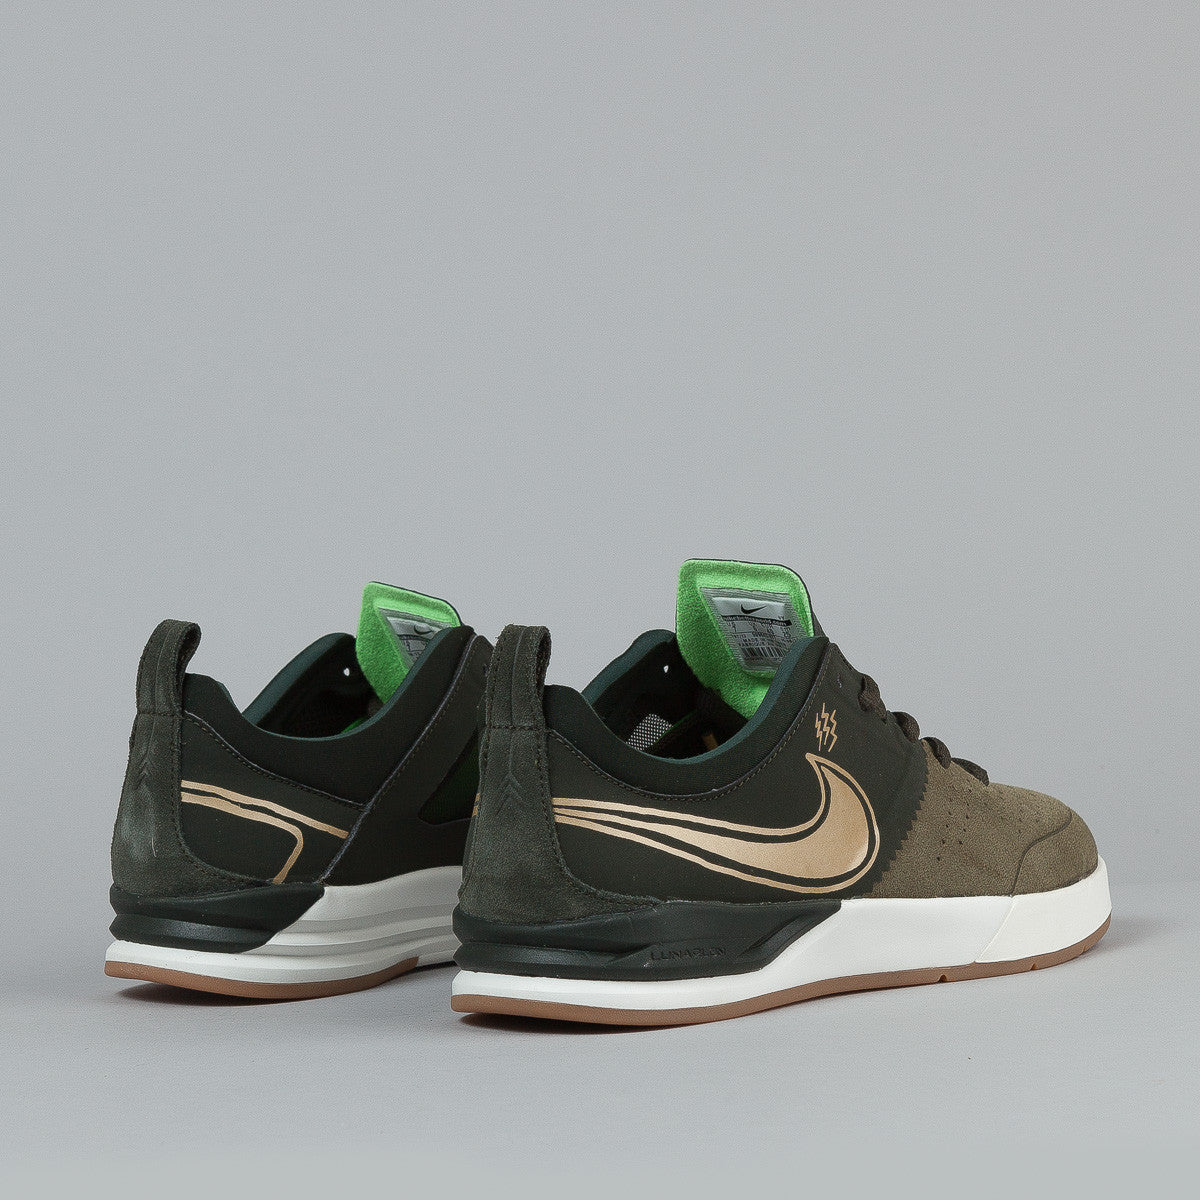 Nike SB Project BA Premium Sequoia / Metallic Gold / Medium Olive / Flash Lime